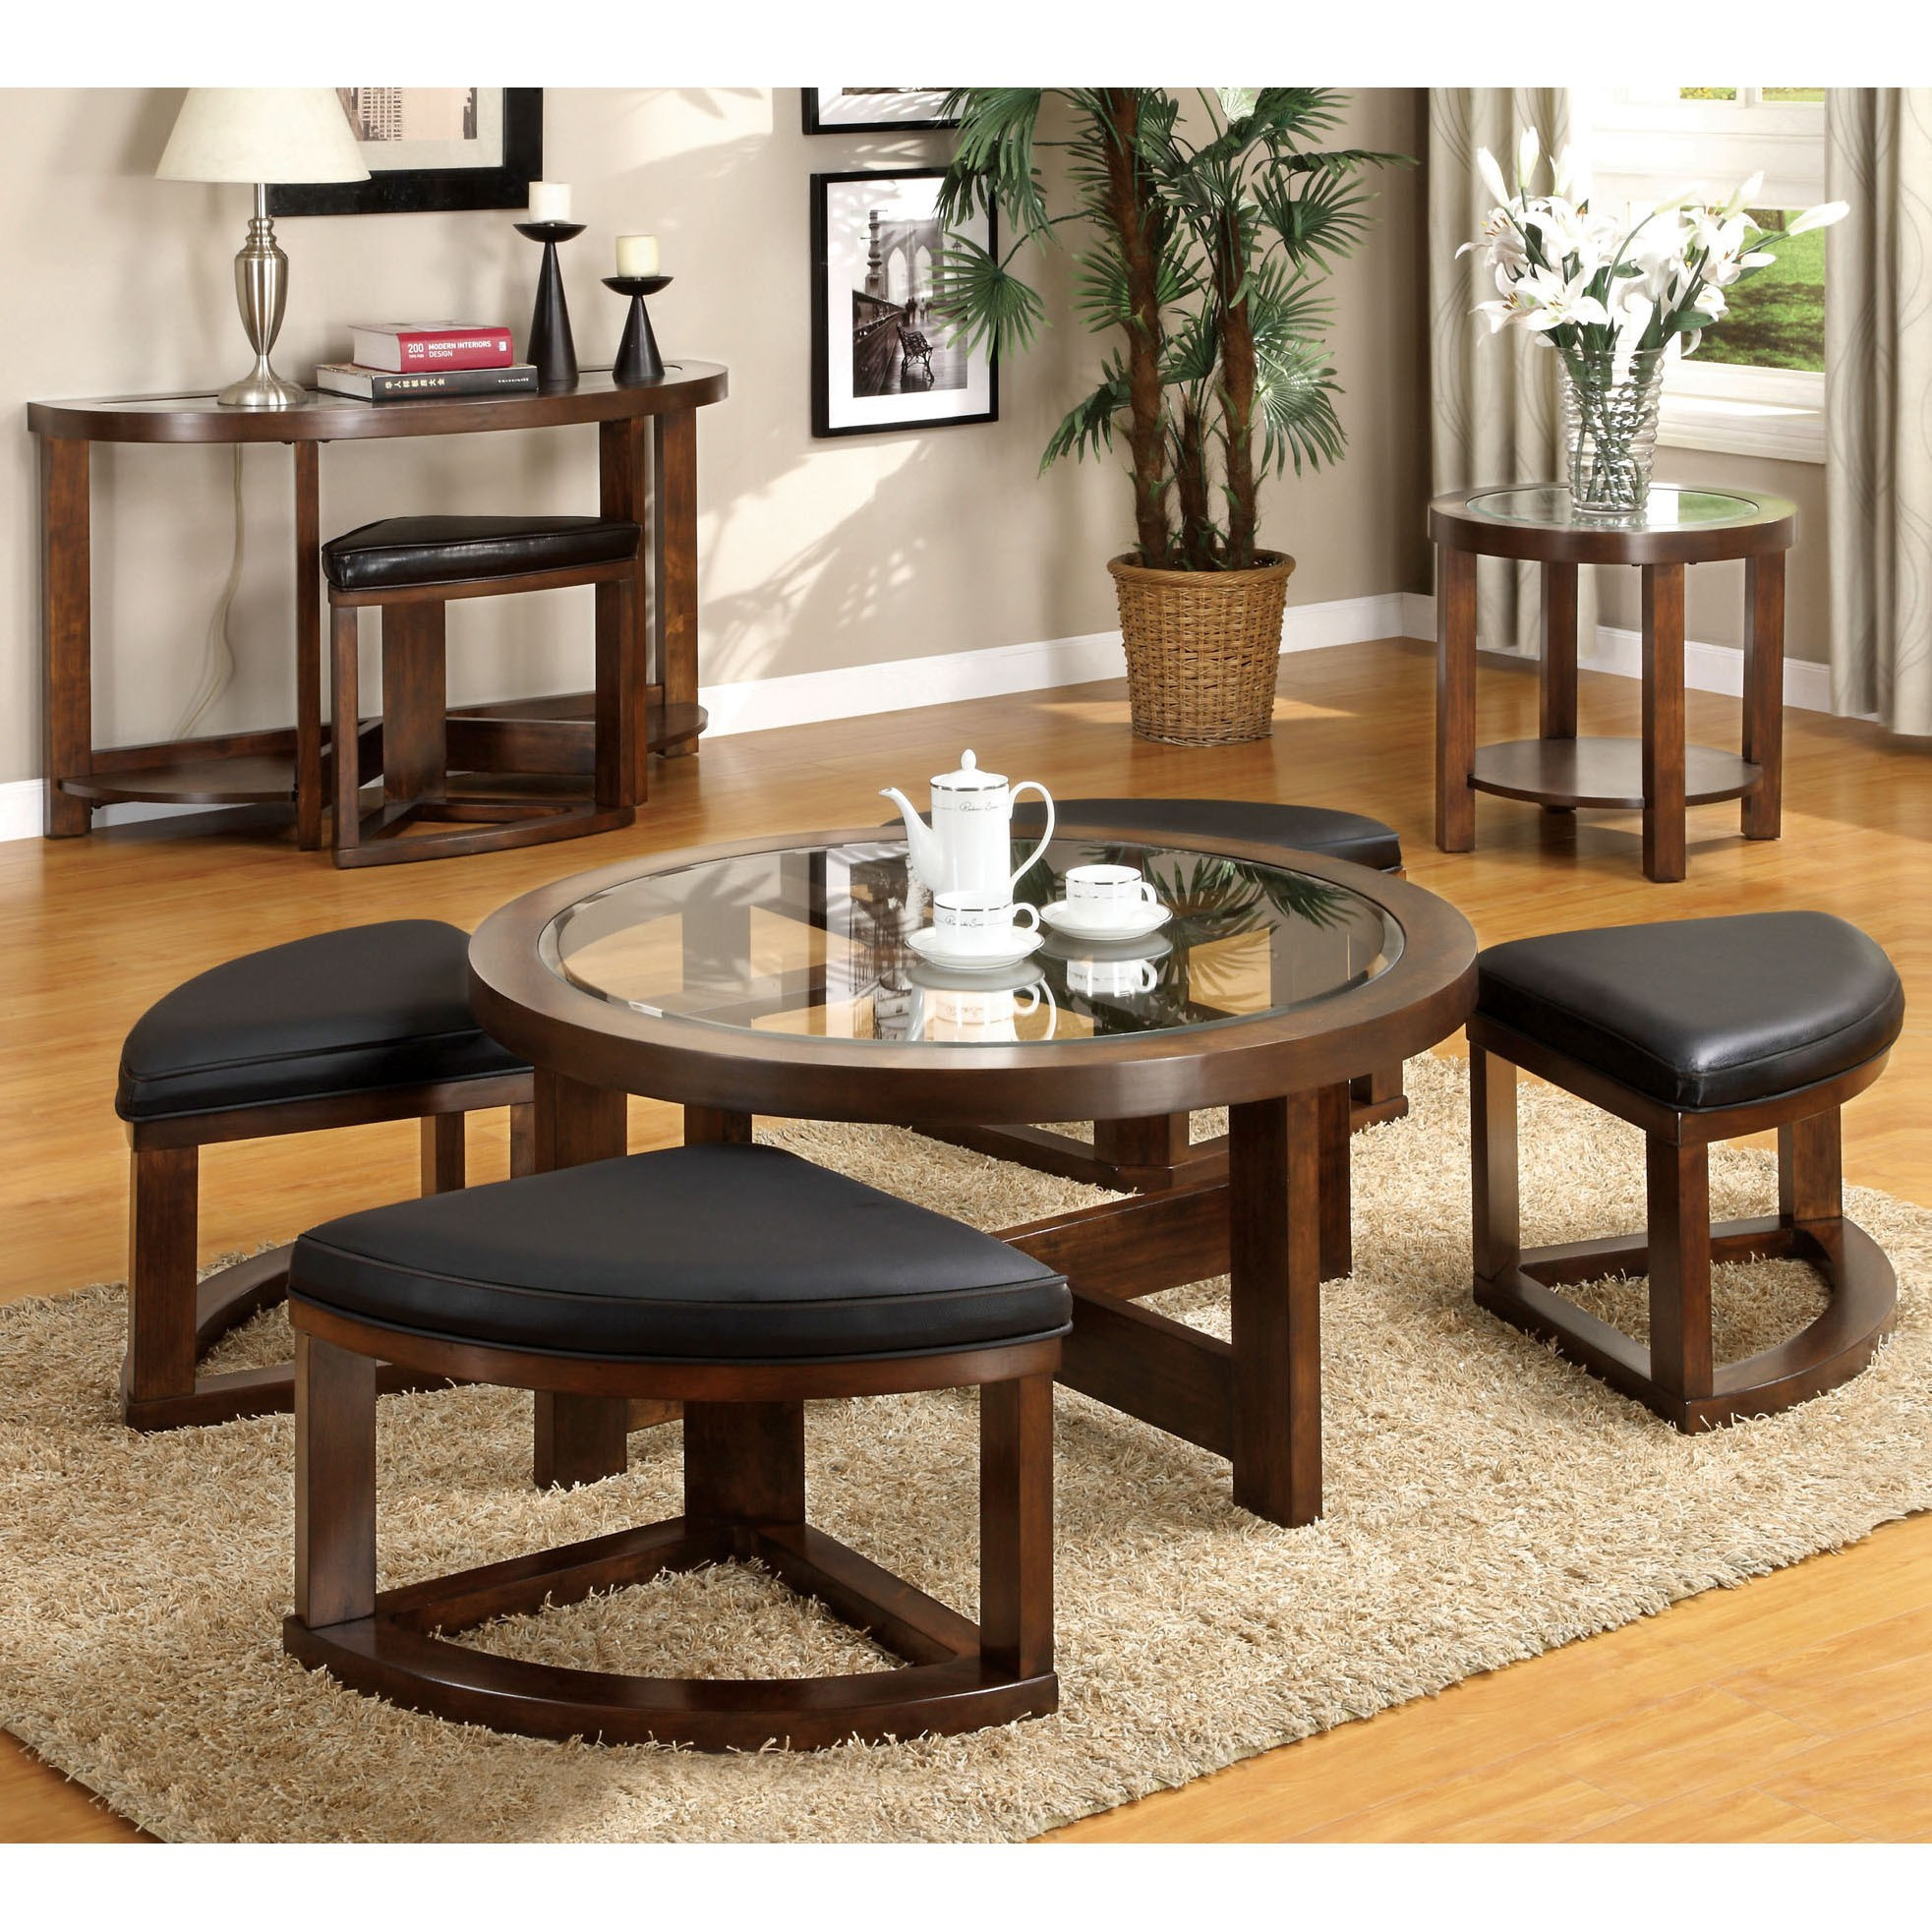 furniture america gracie dark walnut piece accent table set free shipping today sofa design for small space room essentials folding desk lamp with usb port homesense bar stools